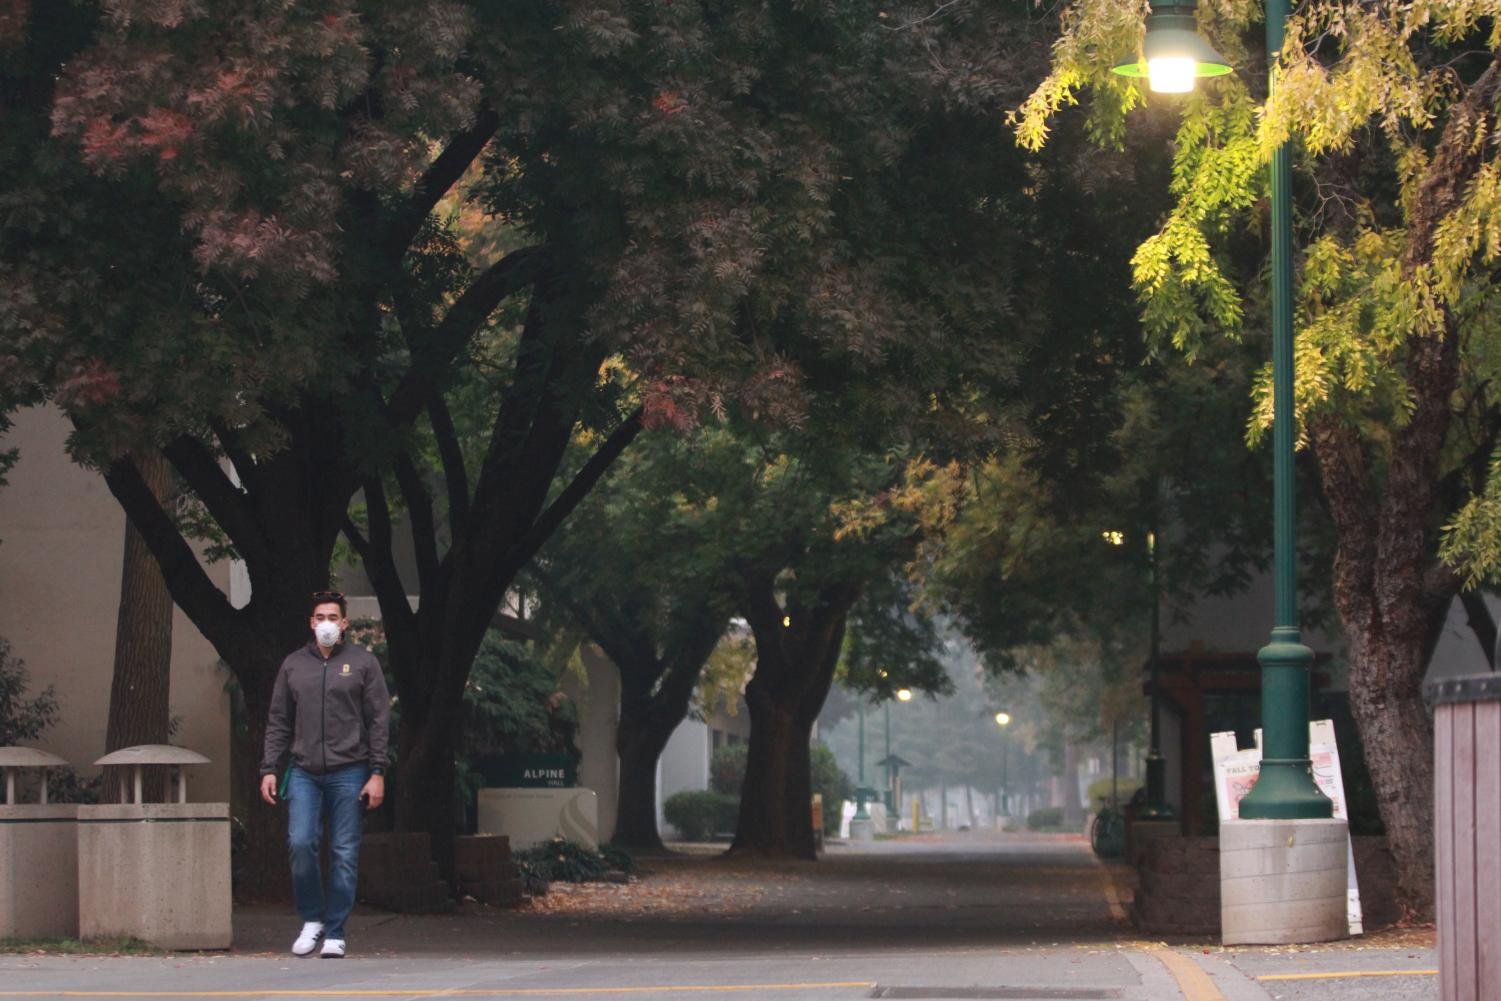 Sacramento State Residence Life Coordinator Edgardo Palomo wears a respirator mask as he treks through the smoke-filled campus walkways on Nov. 14. President Robert Nelsen announced for the third day in a row that campus will be closed Thursday due to the poor air quality from the smoke of the Camp Fire in Butte County.